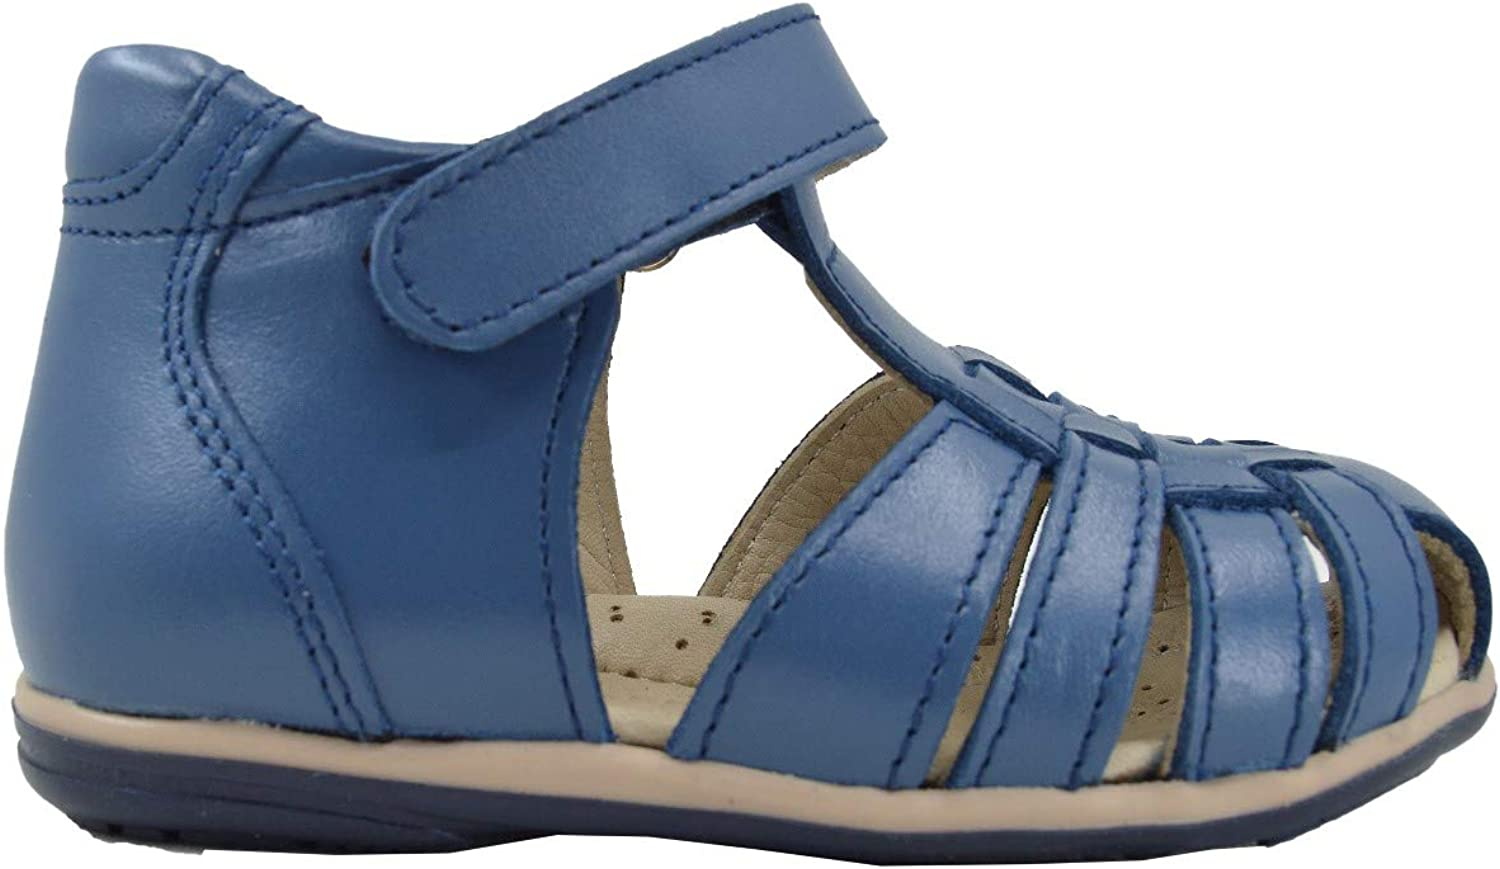 Ortopedia,Orthopedic Sandals Boys Girls with Ankle Support